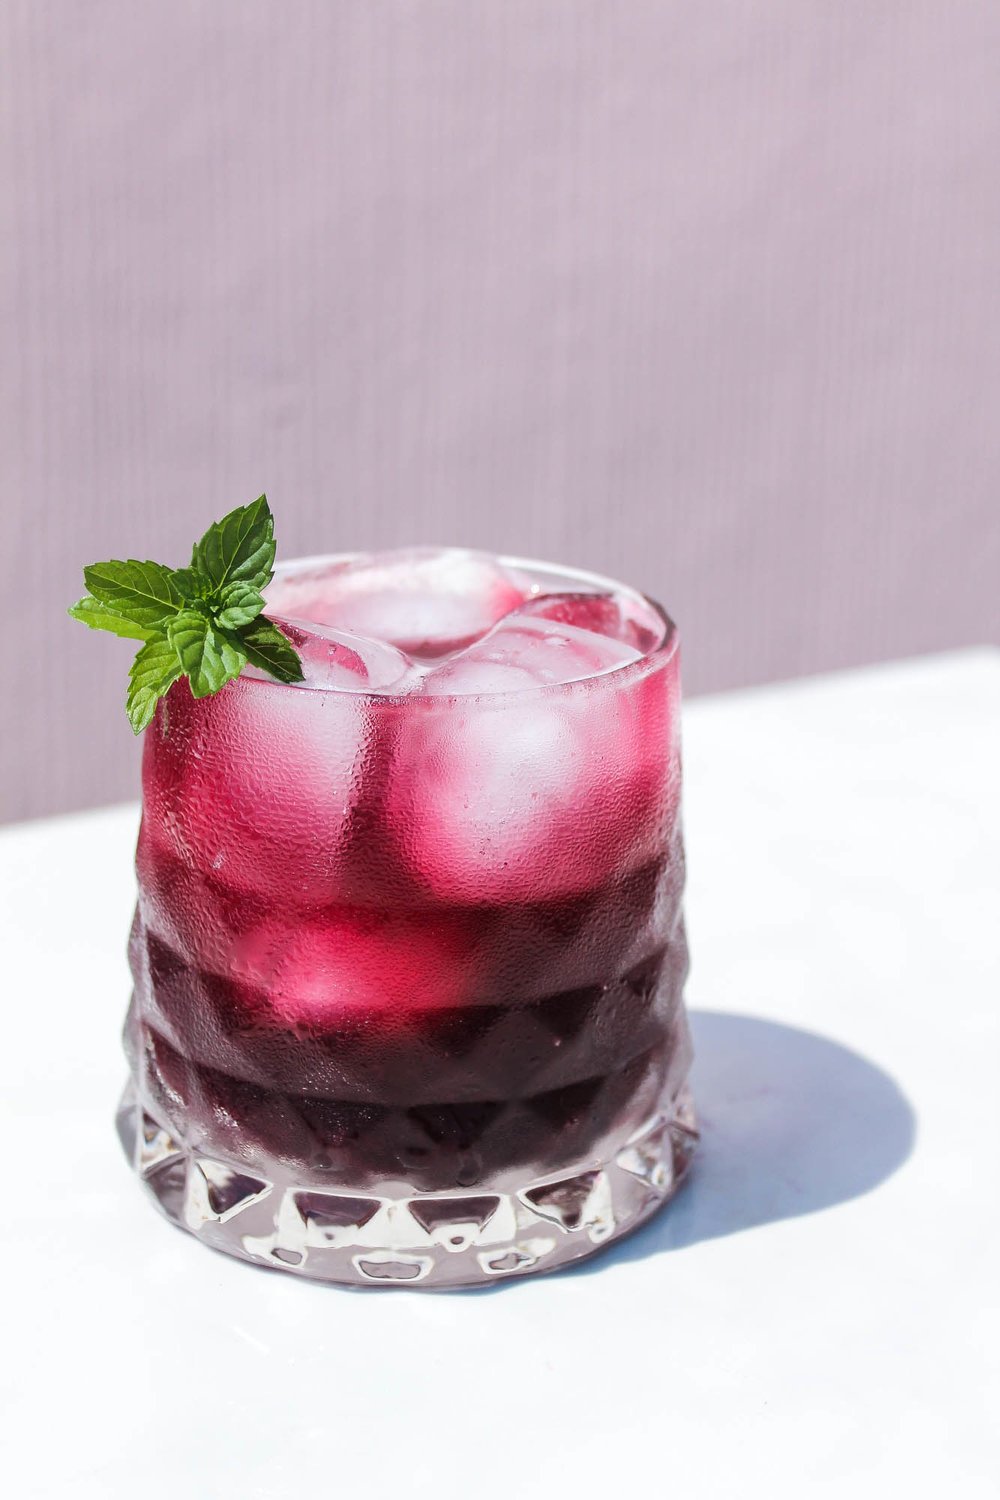 Blueberry Lemon Mint Soda || Refreshing summer mocktail recipe made with blueberries, lemon juice, honey, sparkling water + fresh mint. No refined sugars and tastes amazing as a gin or vodka cocktail. || creamandhoney.ca